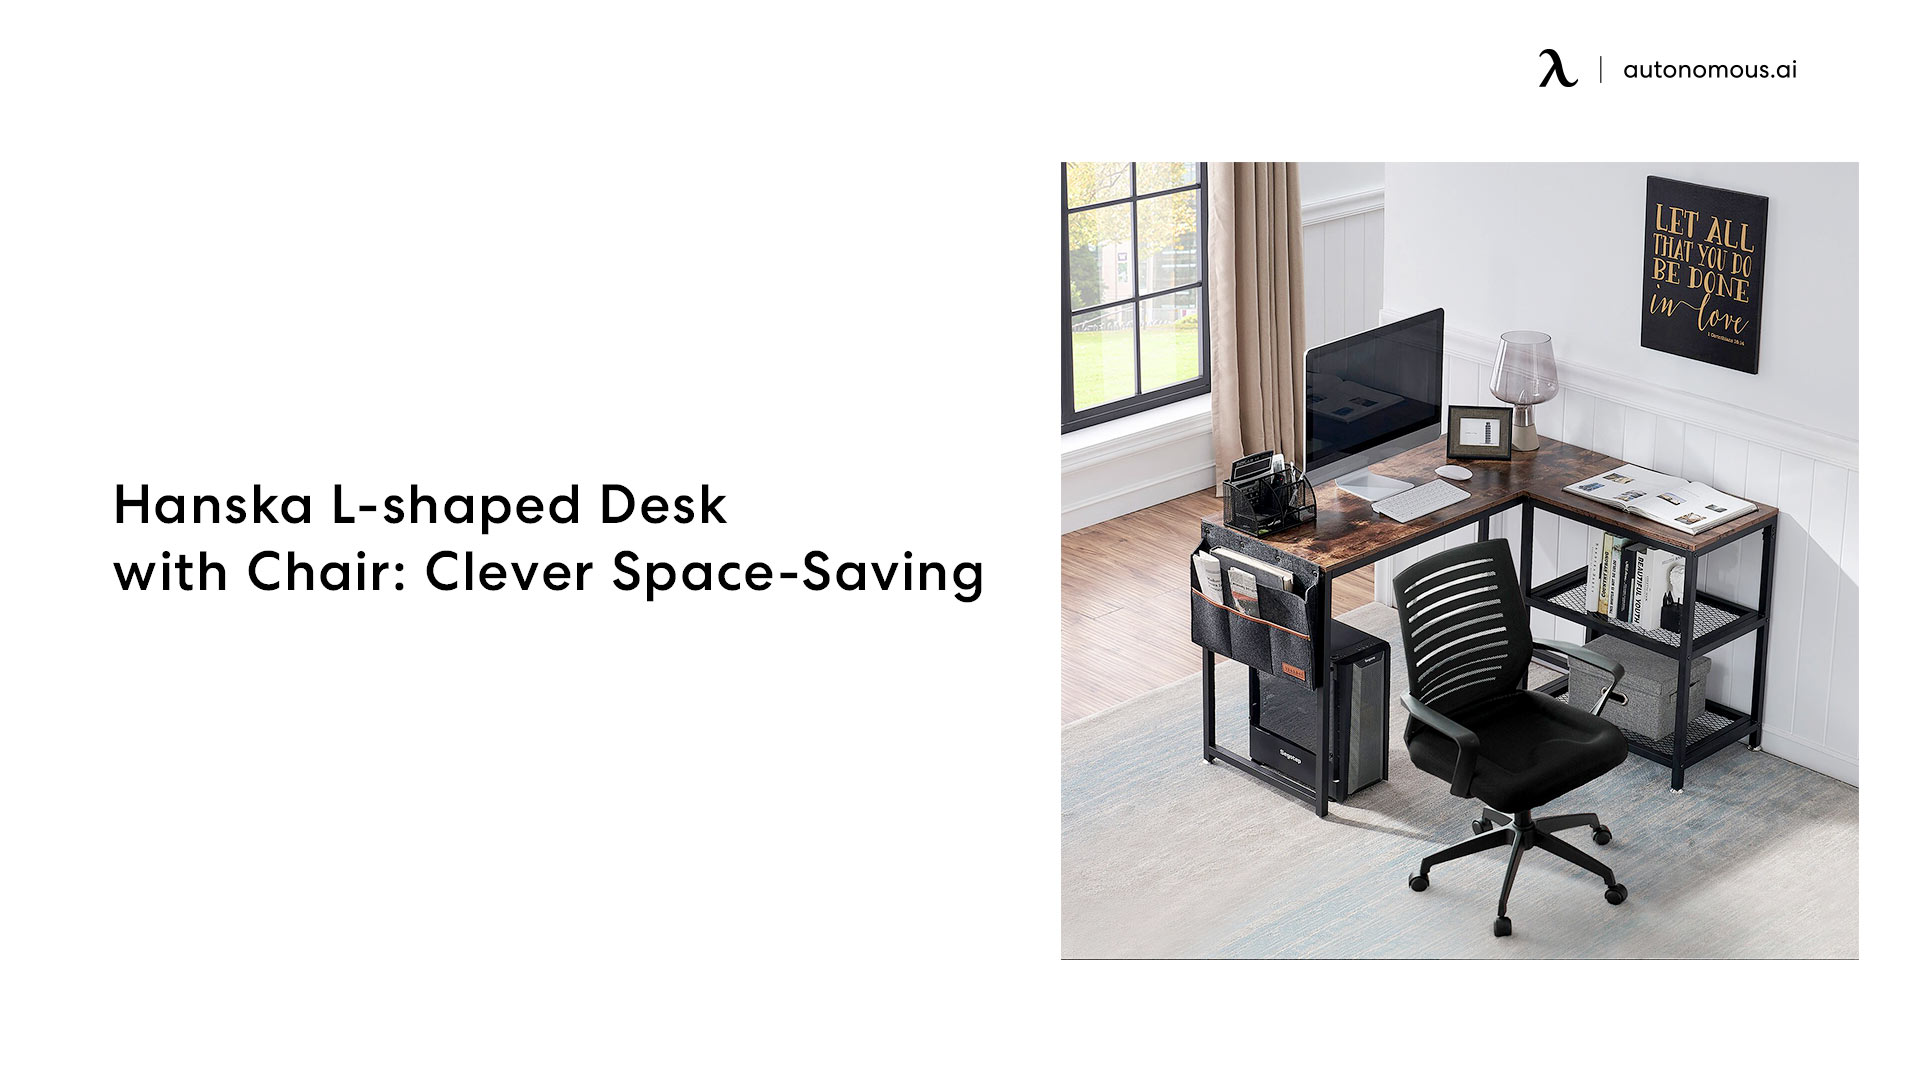 Hanska L-shaped Desk with Chair: Clever Space-Saving